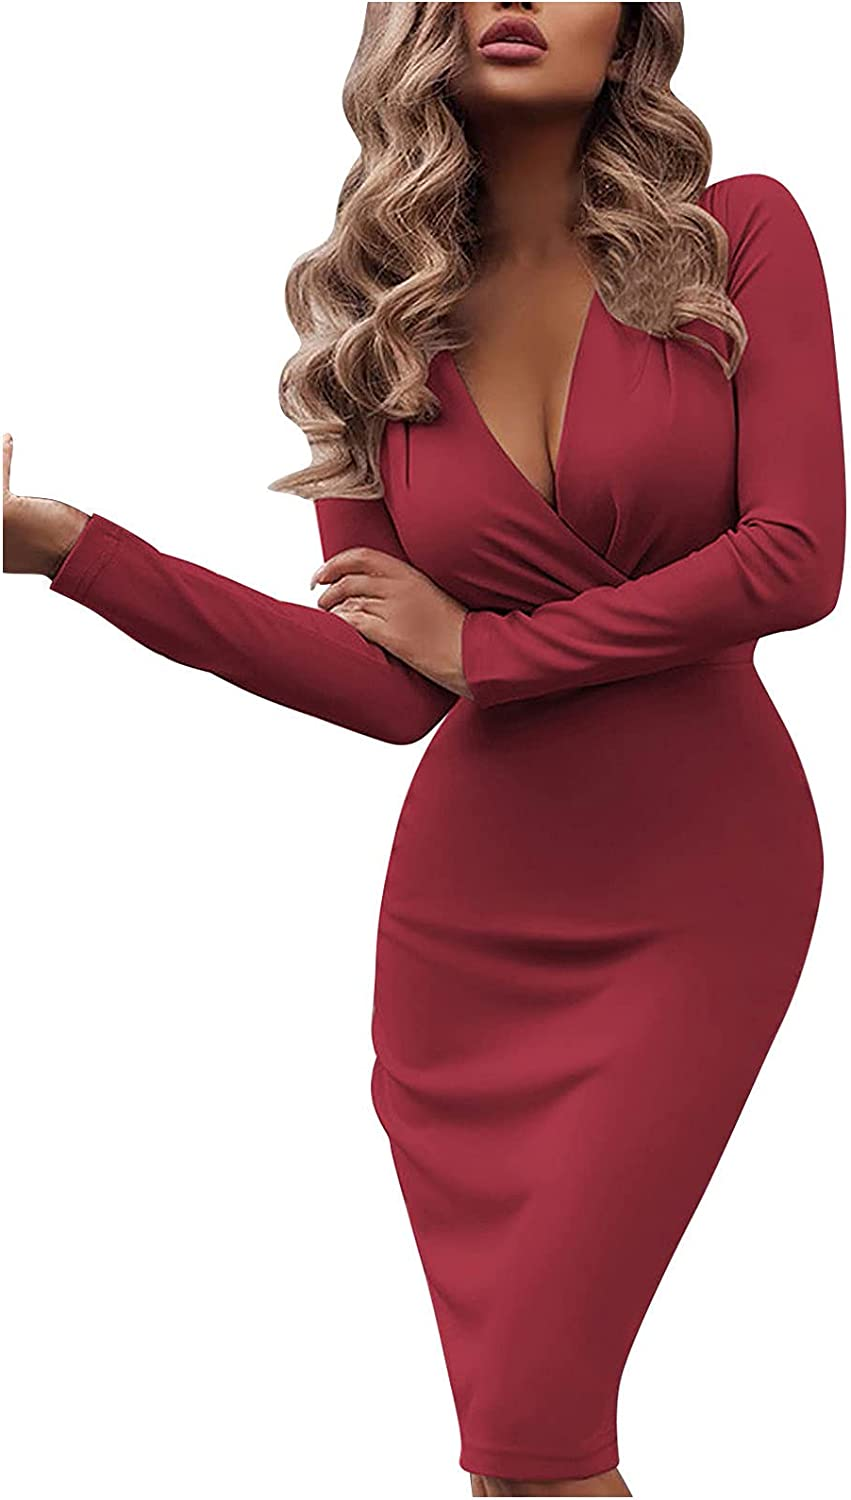 Women's Long Sleeve Deep V Neck Dress Sexy Plus Size Solid Cocktail Wedding Guest Party Summer Casual Dresses